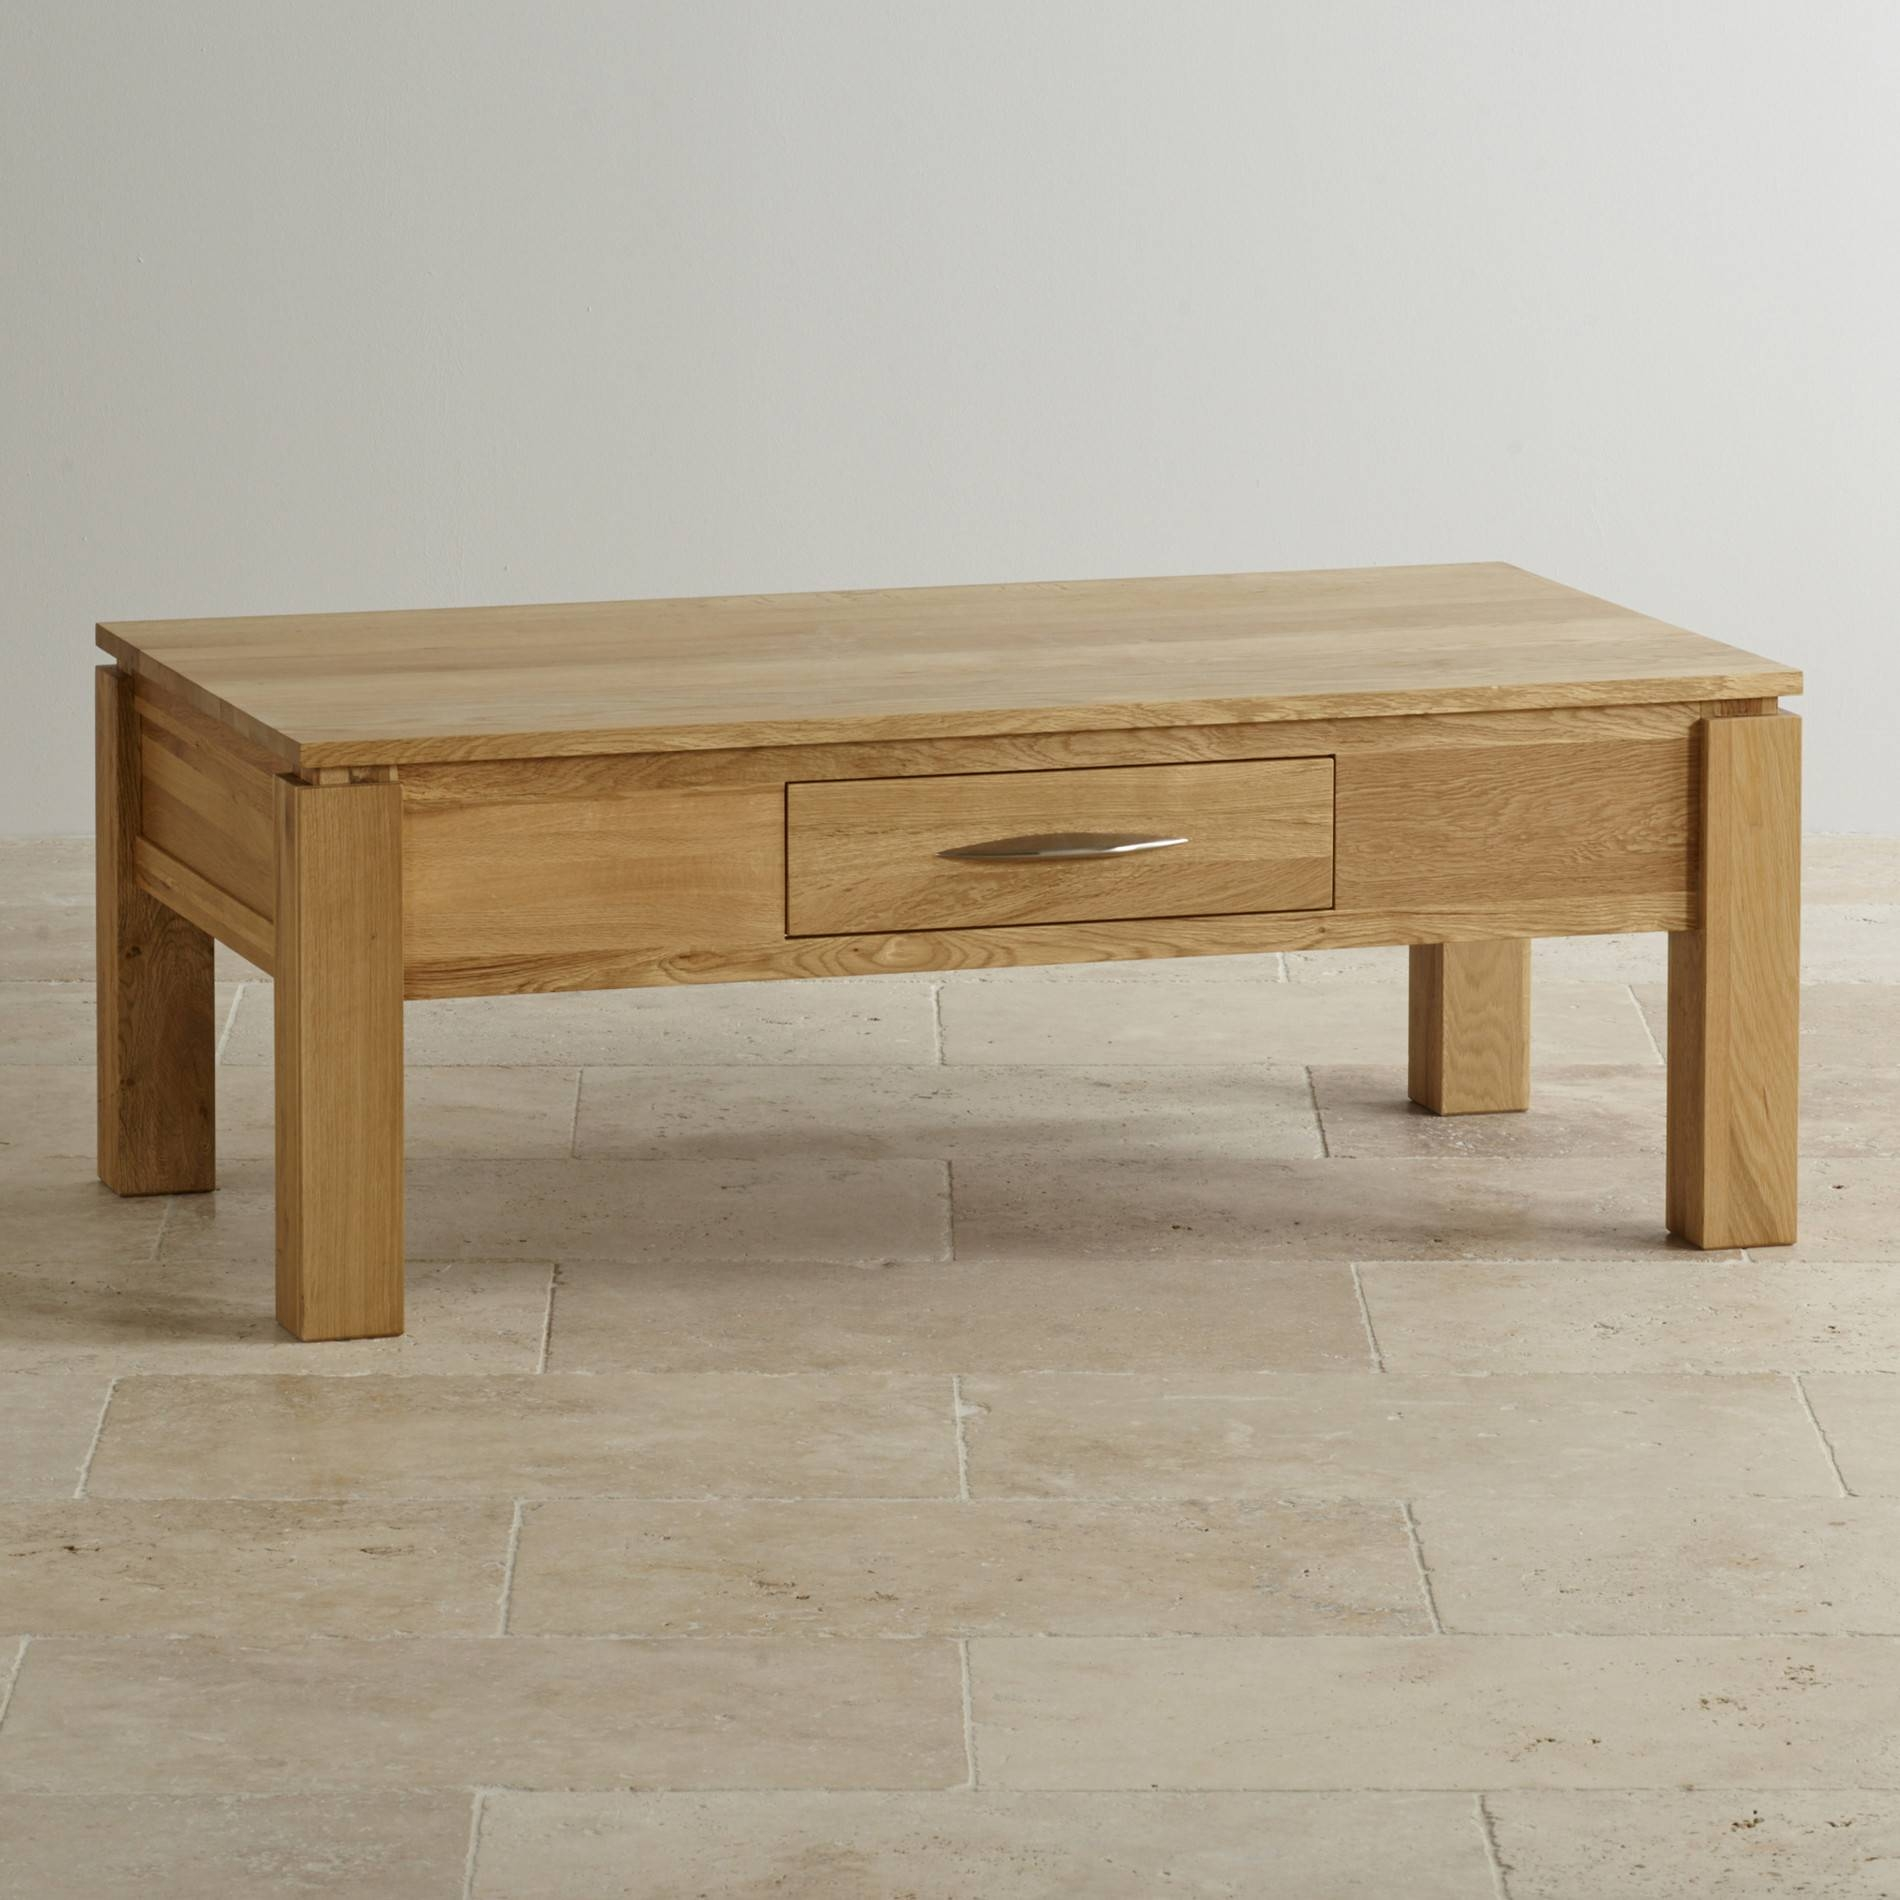 15 Ideas of Oak Coffee Tables